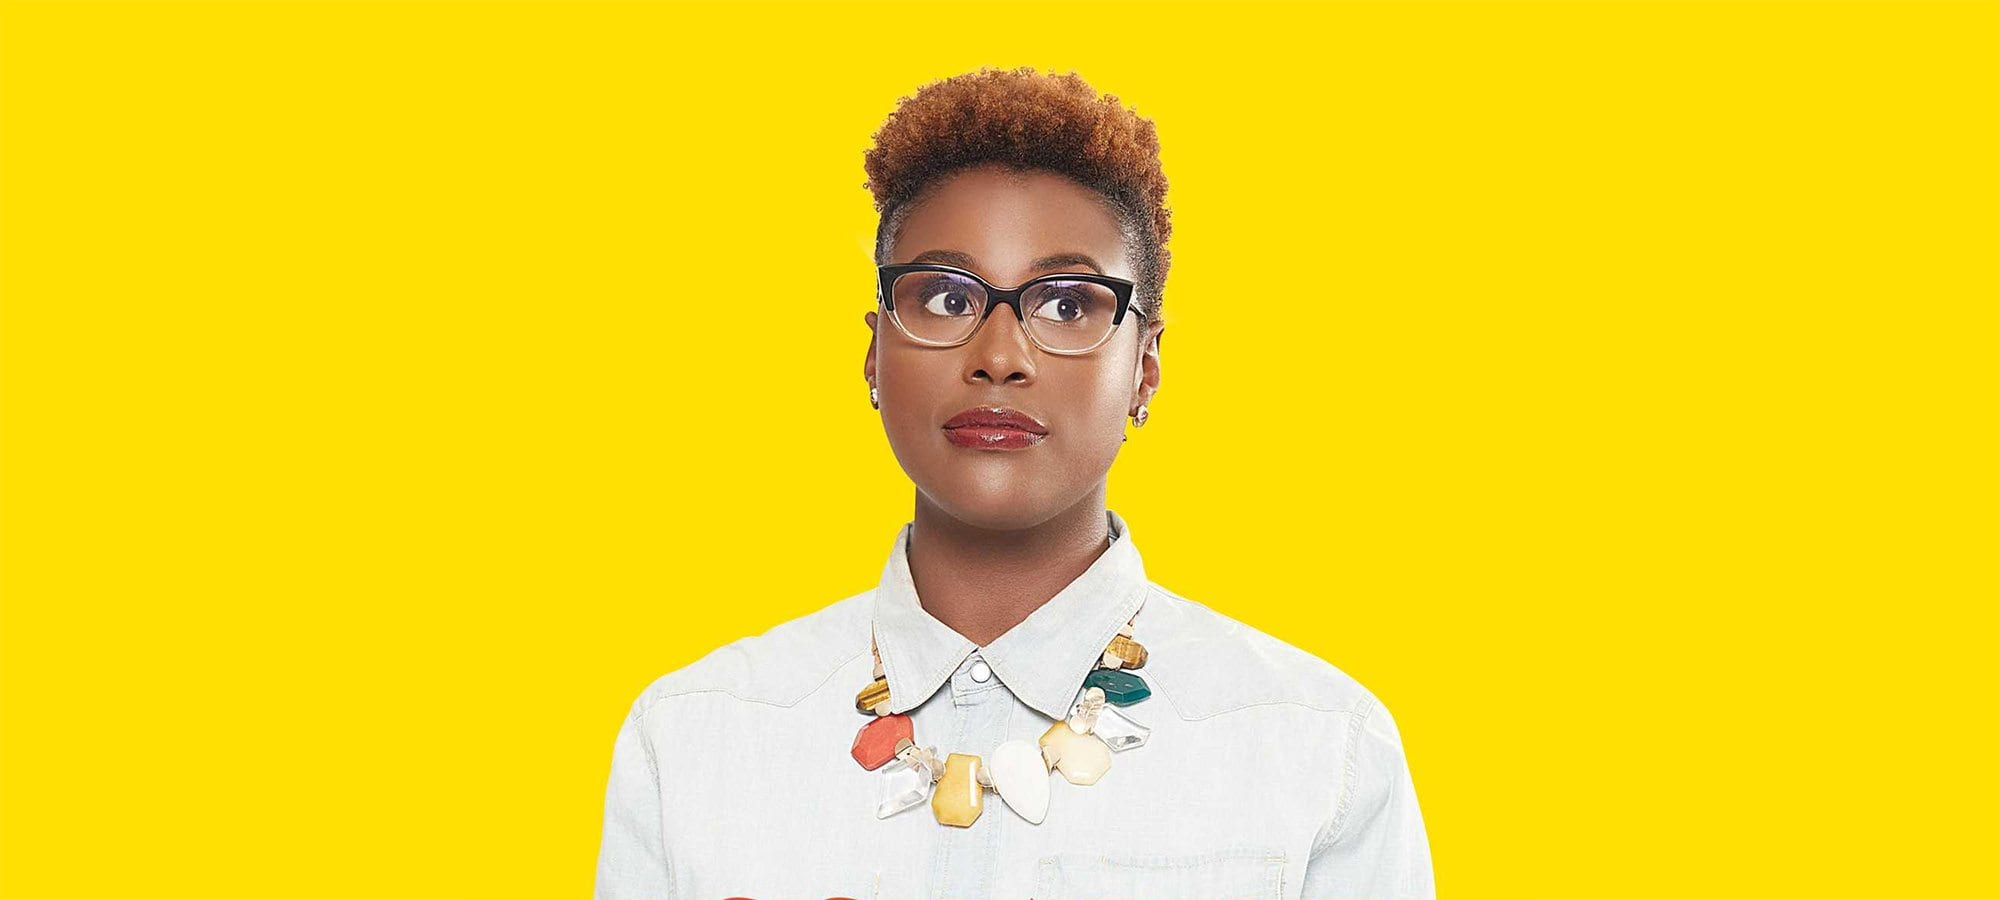 To celebrate Issa's long-awaited big screen breakout in 'Little', here's our celebration of Miss Issa Rae and her least insecure moments.